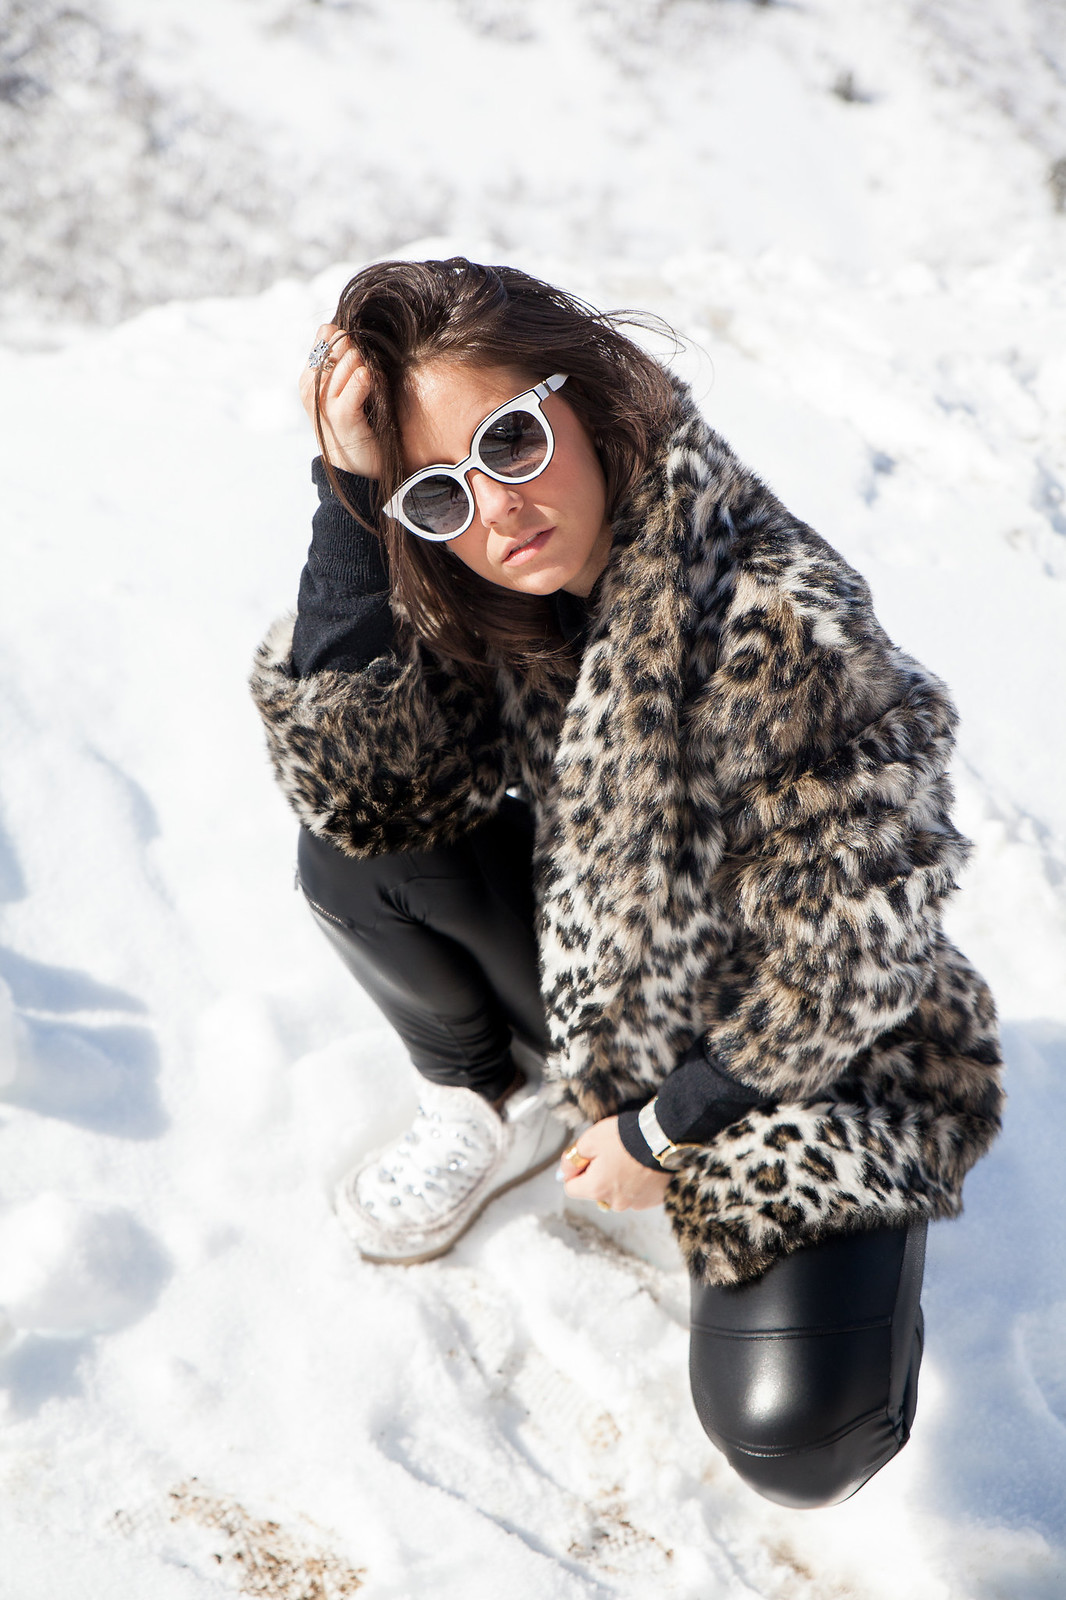 CÓMO COMBINAR LOOK ABRIGO DE LEOPARDO look and chic style snow the guest girl noholita dulceida sincerely jules lovelypepa laura influencer theguestgirl baqueira influencer barcelona look leopard coat faux fur ariviere andreabelver party jordan carla hinojosa